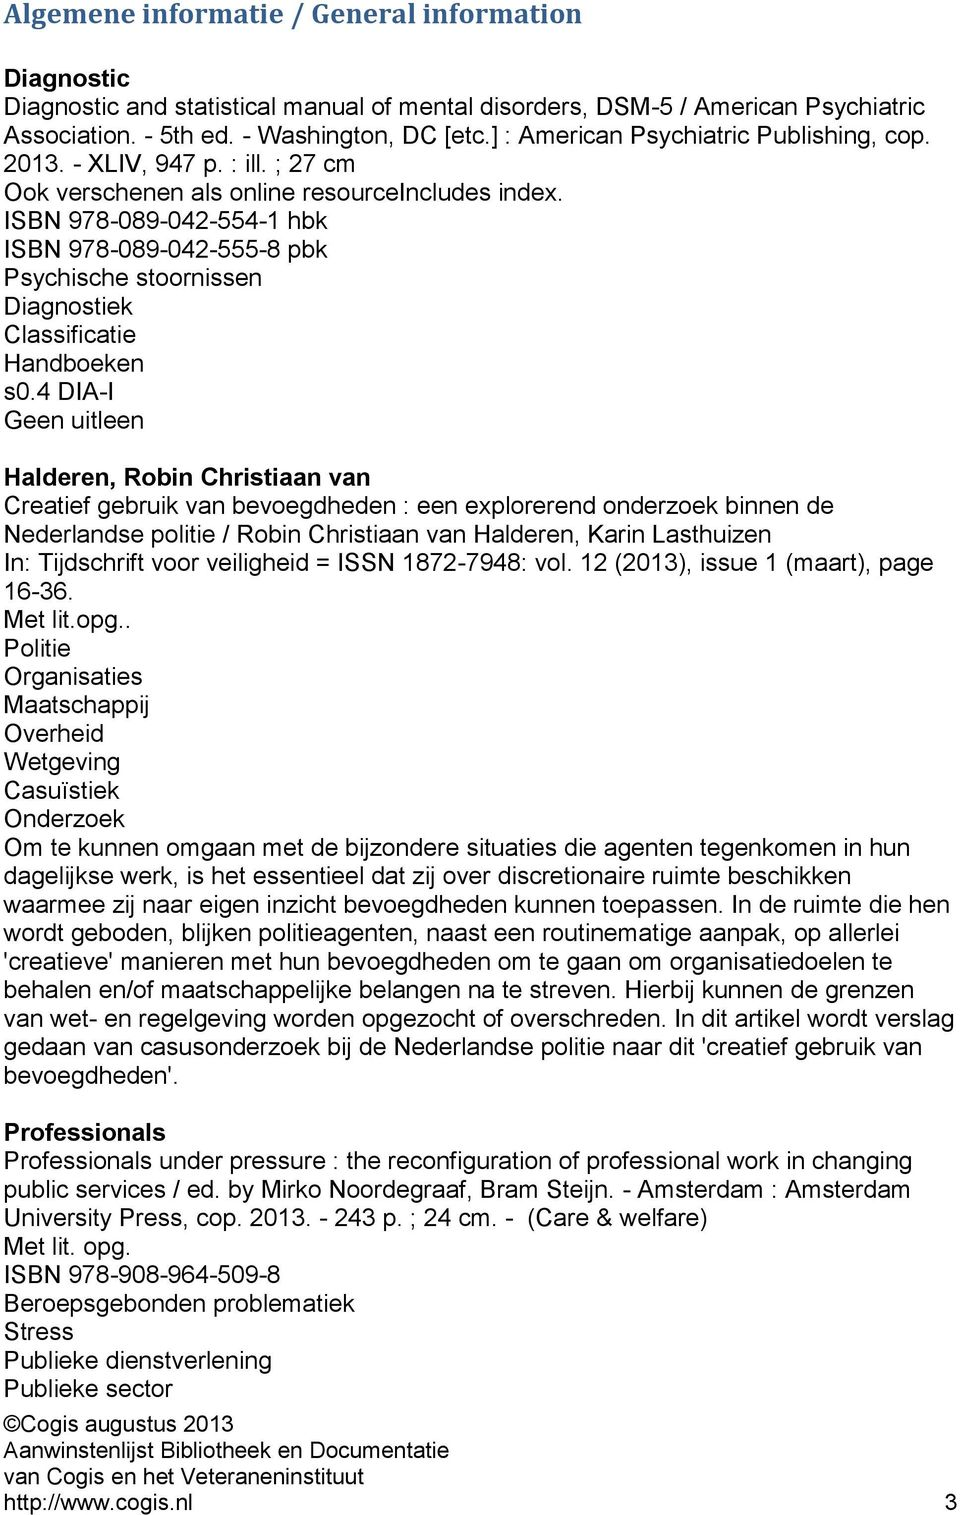 ISBN 978-089-042-554-1 hbk ISBN 978-089-042-555-8 pbk Psychische stoornissen Diagnostiek Classificatie Handboeken s0.